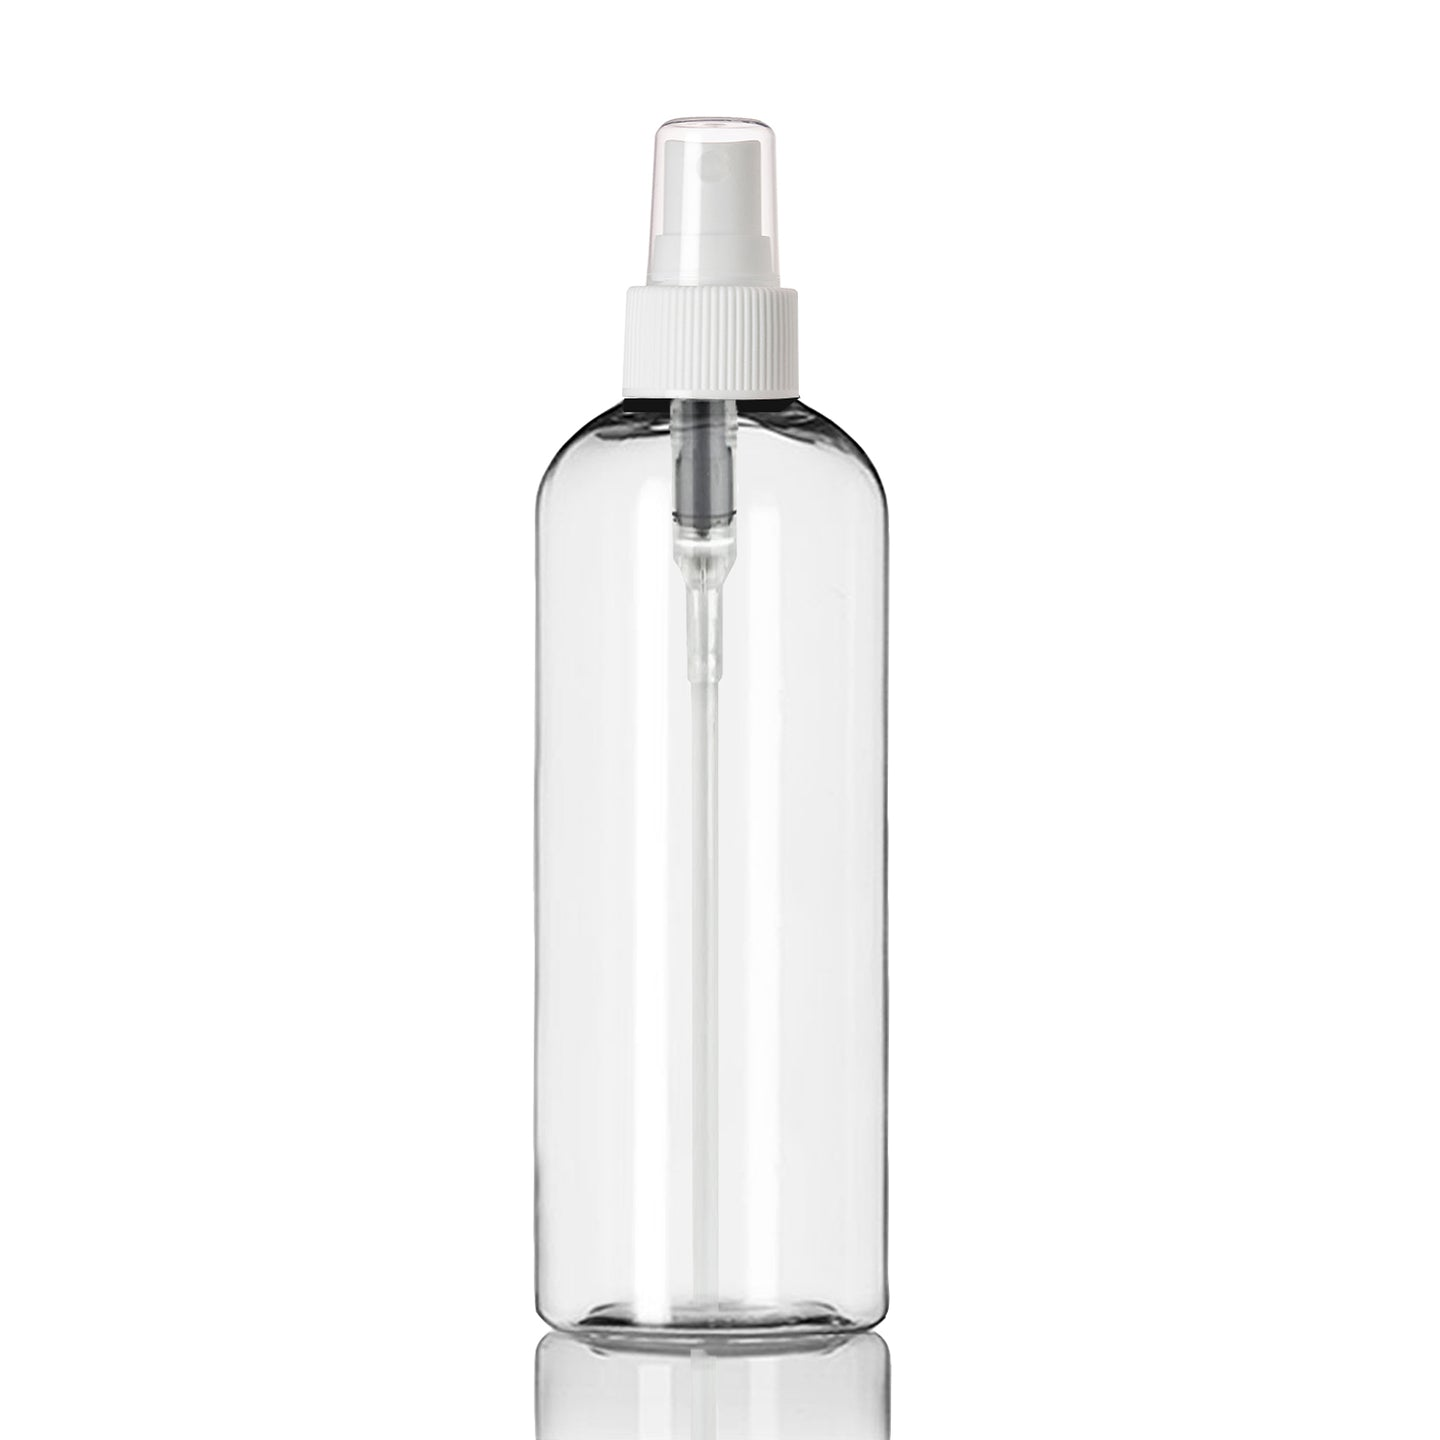 Bulk Wholesale Case Pack Qty 500 MoYo Natural Labs 6 oz Spray Bottle Fine Mist Empty Travel Containers BPA Free PET Plastic for Essential Oils and Liquids/Cosmetics (500 Pack Minimum, Clear)